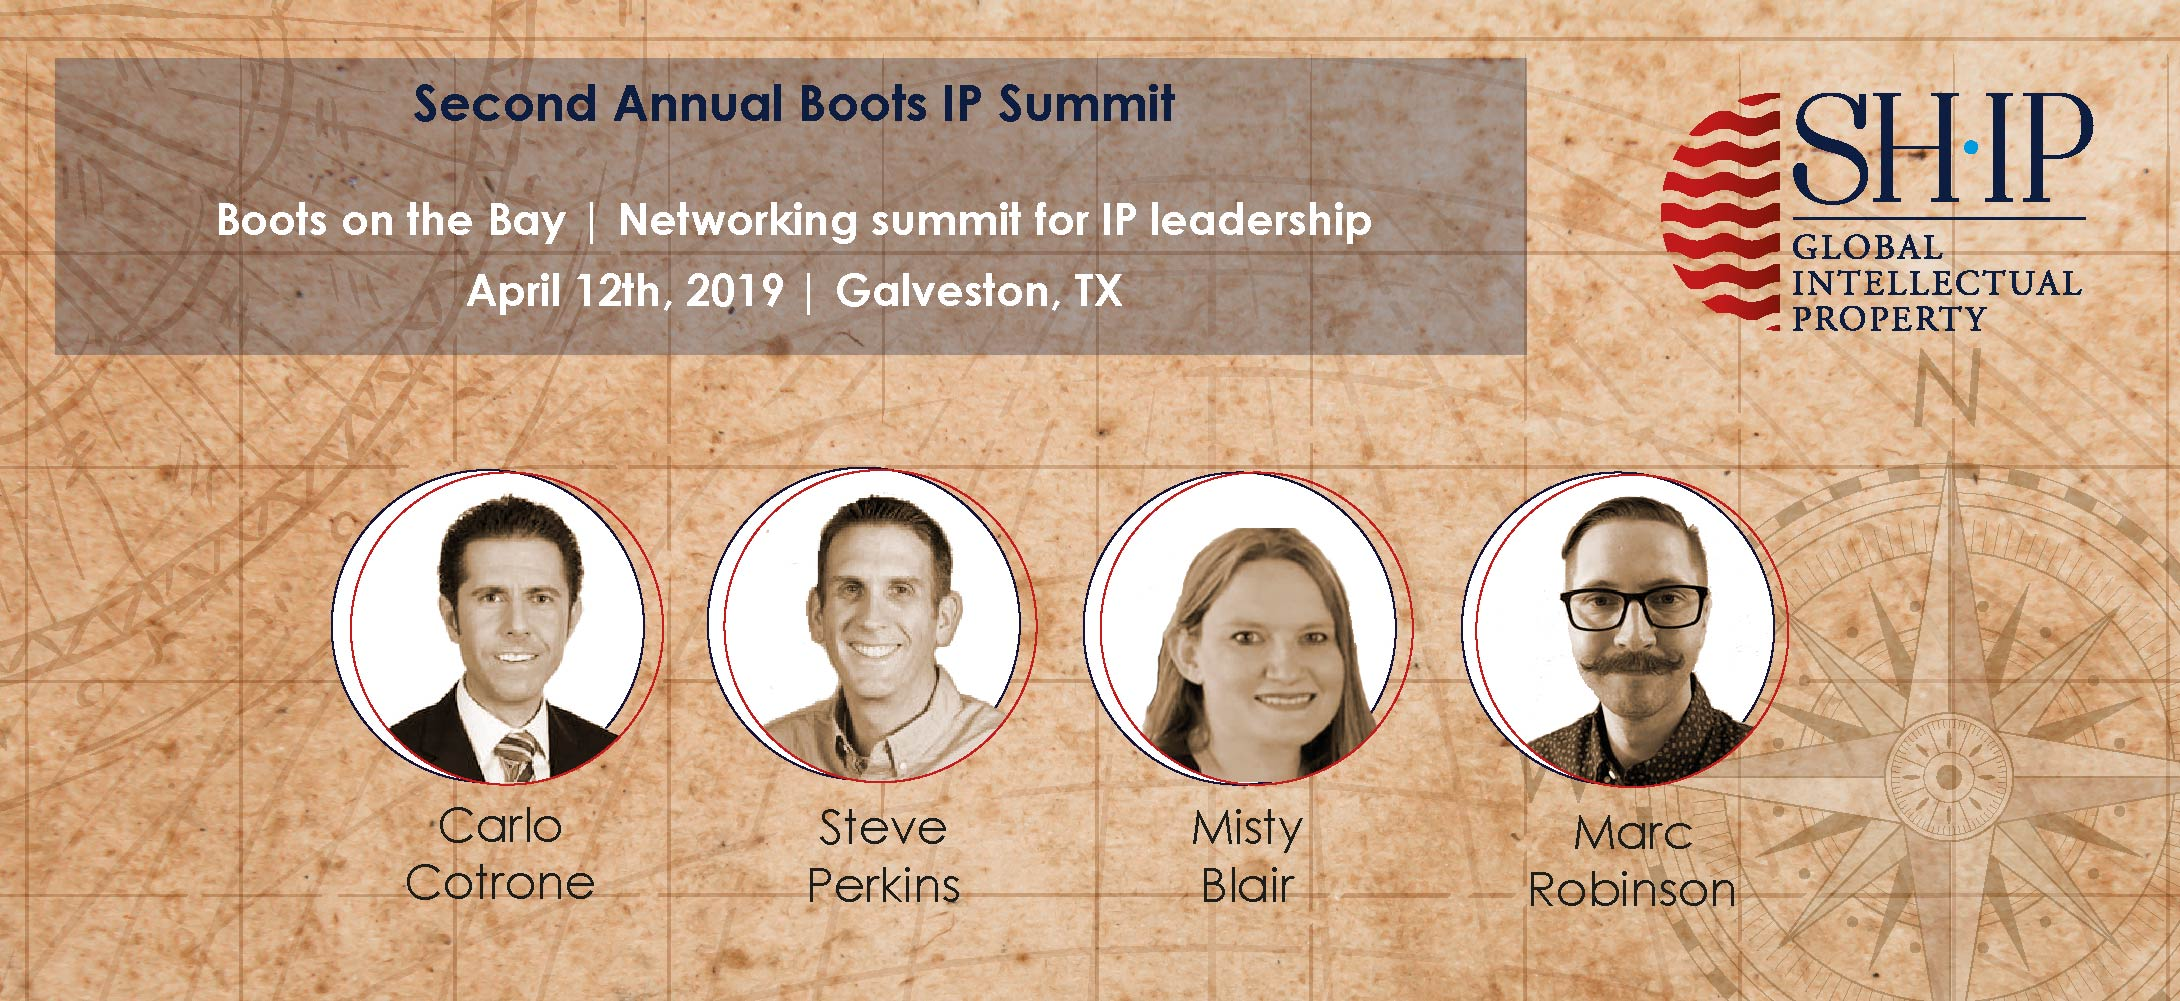 IP Leadership Panelist at Boots on the Bay IP Summit announced!